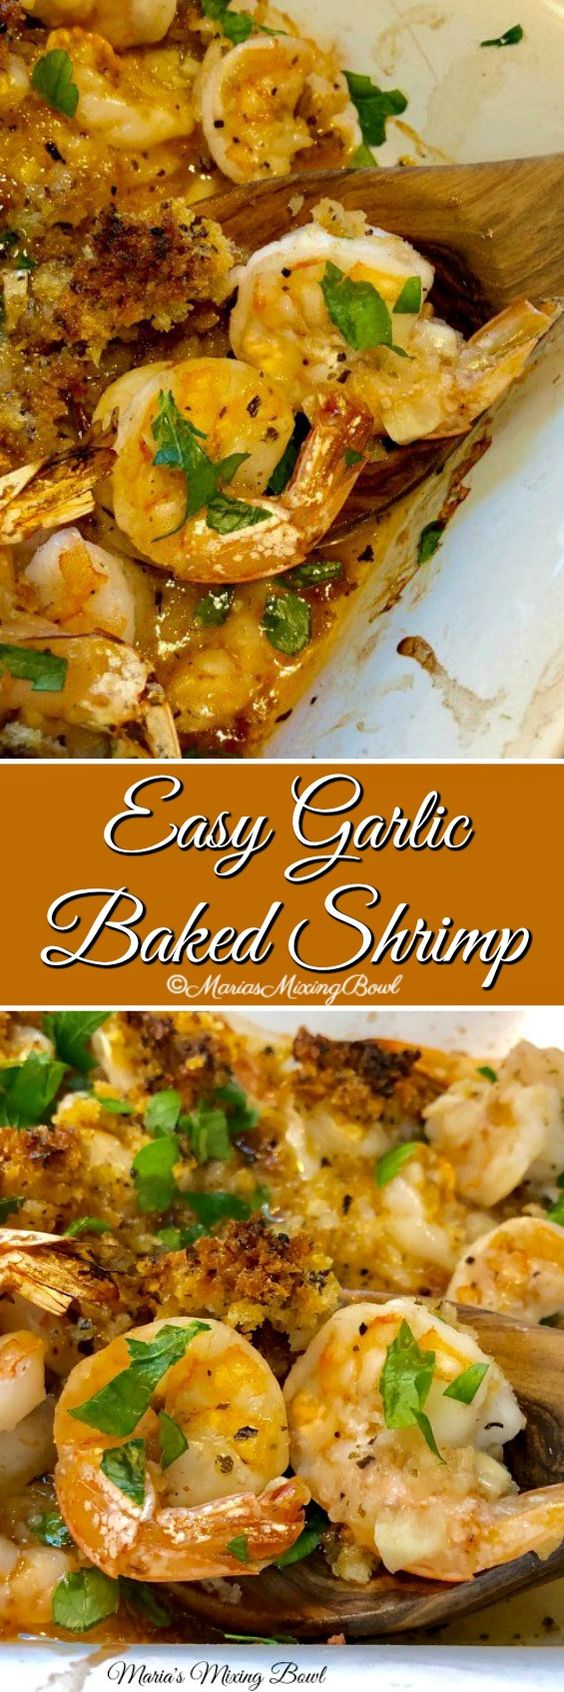 Easy Garlic Baked Shrimp - You will love this delicious garlicky baked shrimp. Full of flavor ,simple to make and always a huge hit. It has become a family favorite.